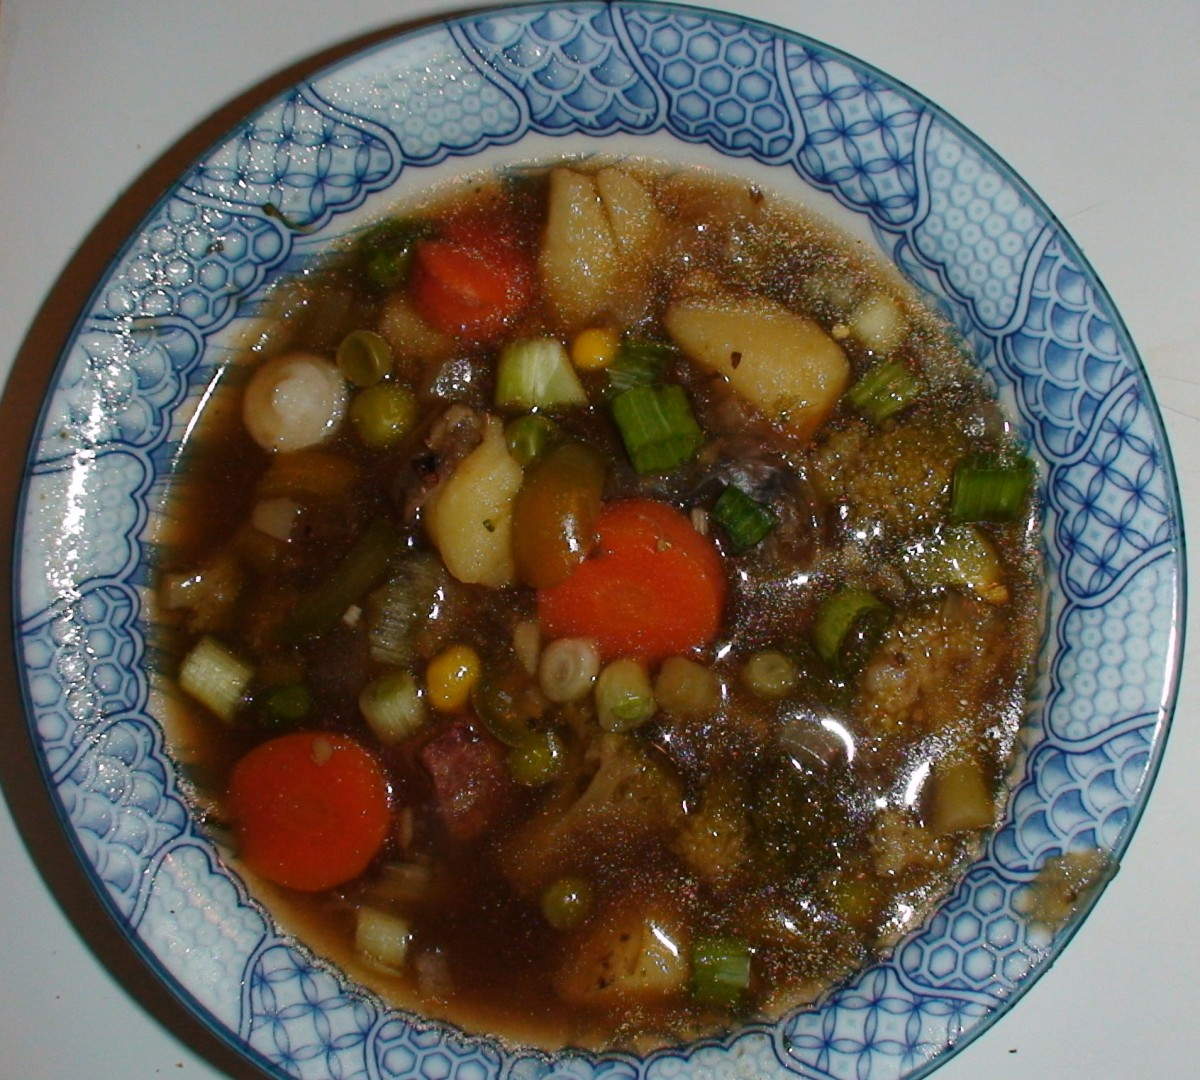 Hambugers, chopped up and added to beef broth with some fresh or frozen veggies and some seasoning, makes for an easy, delicious, and nutritious soup.